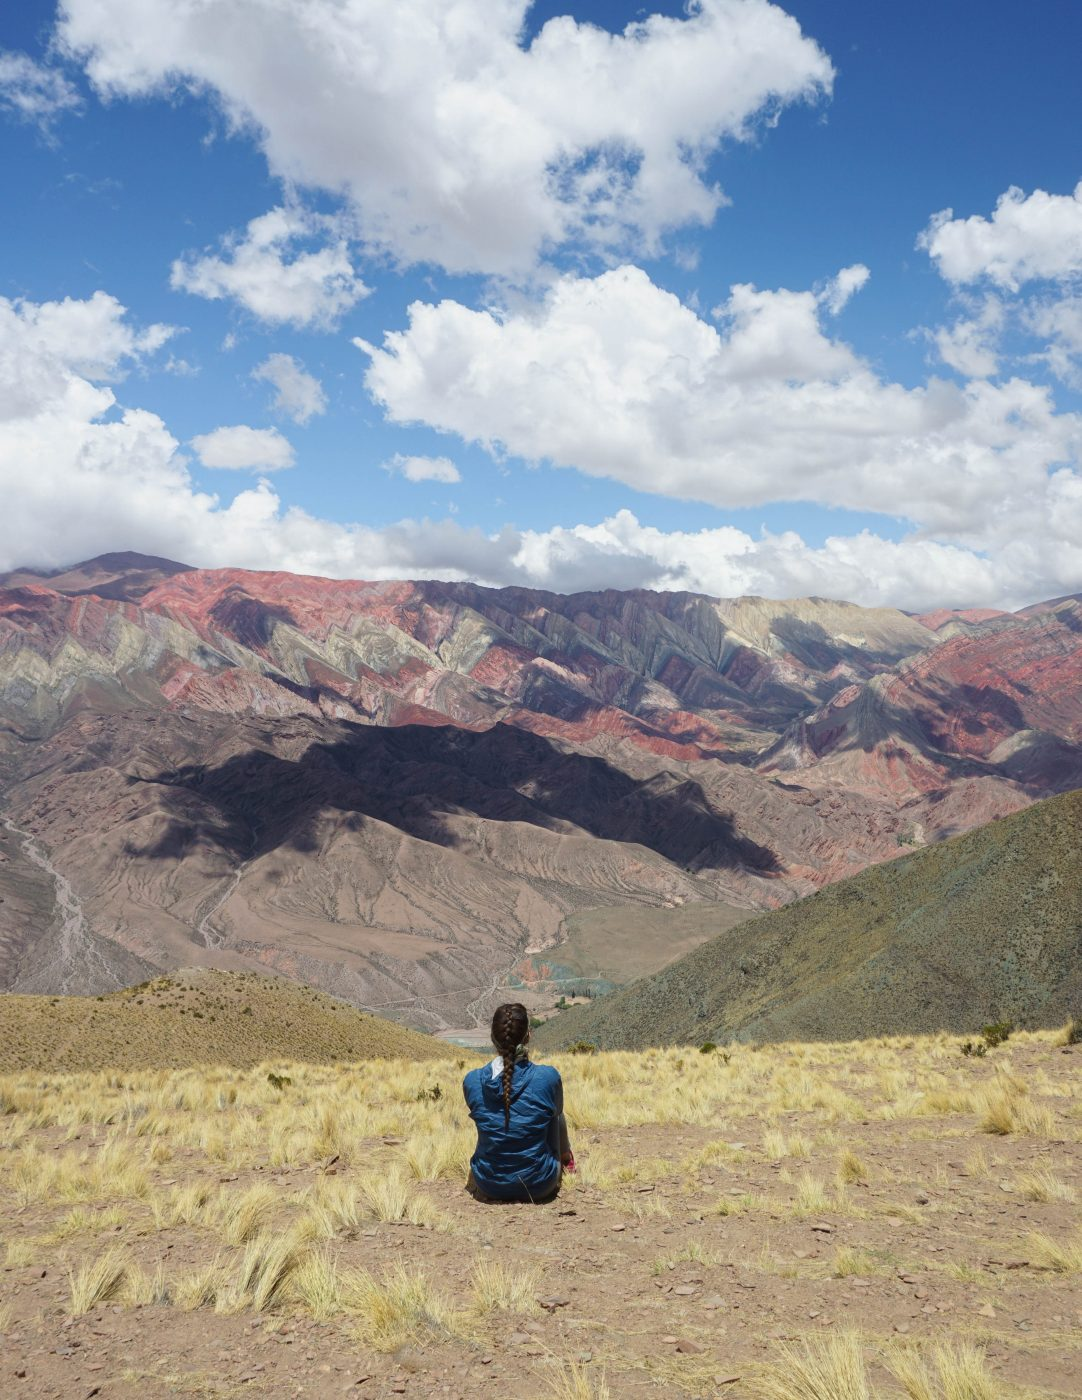 Sierra del hornocal All you need to know to visit Jujuy Argentina